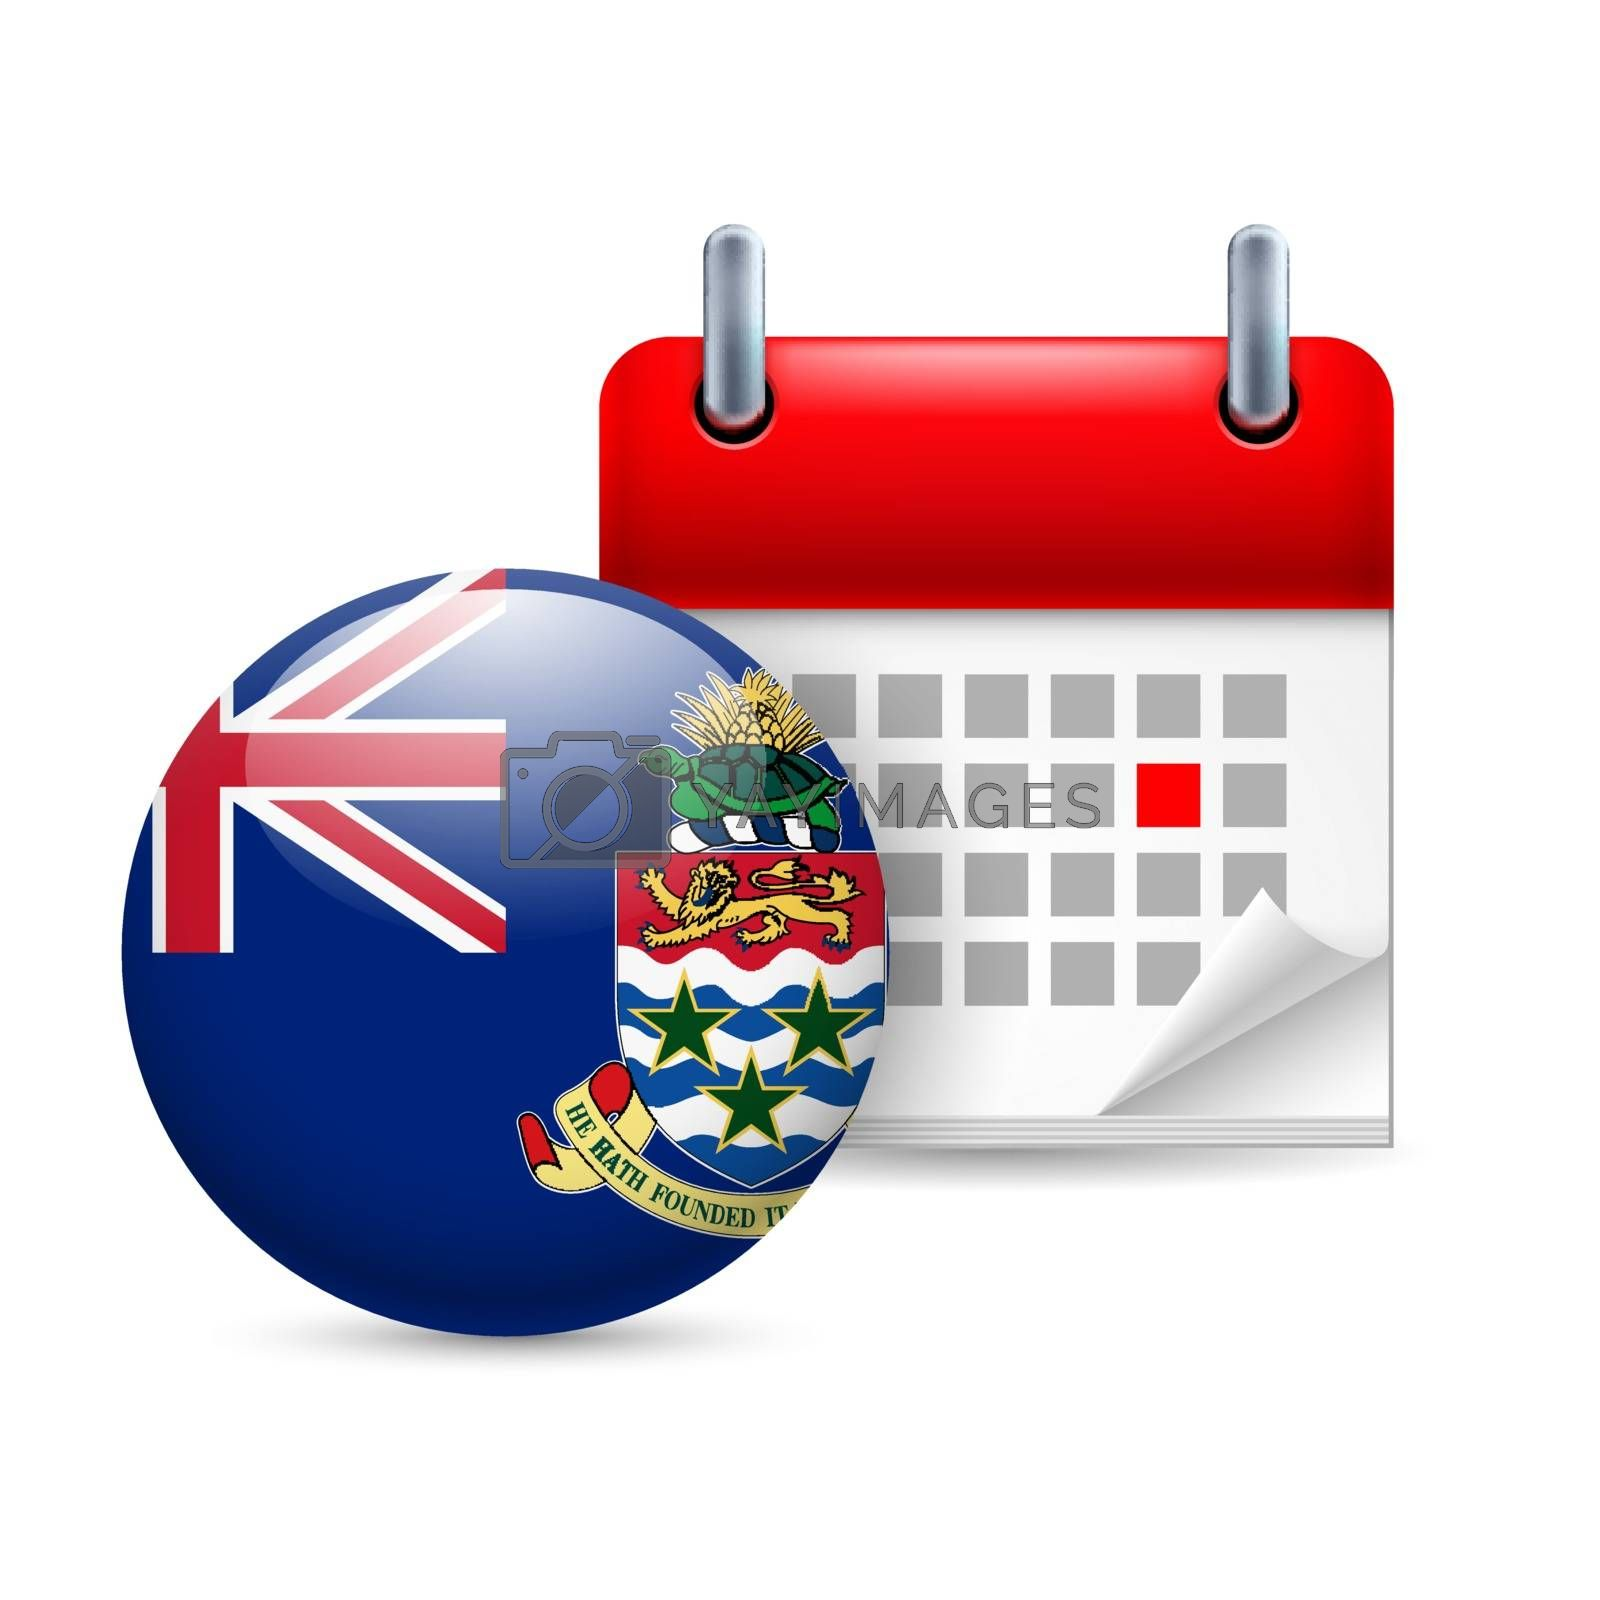 Royalty free image of Icon of National Day on Cayman Islands by dvarg